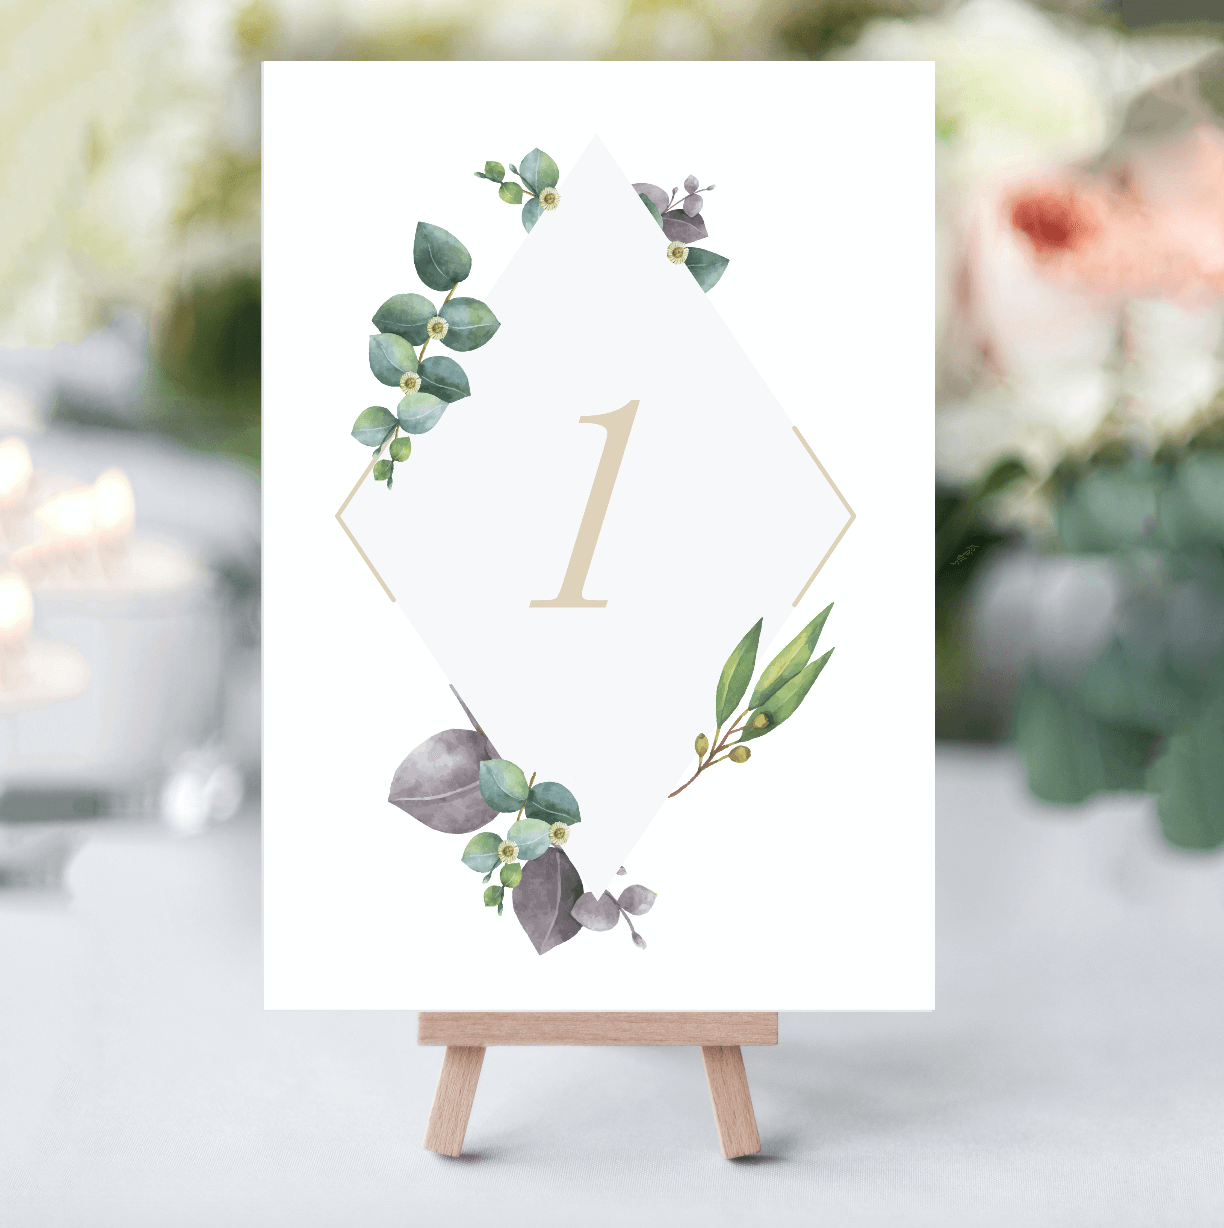 Delicate Foliage Table Numbers - designed by Rodo Creative in Manchester